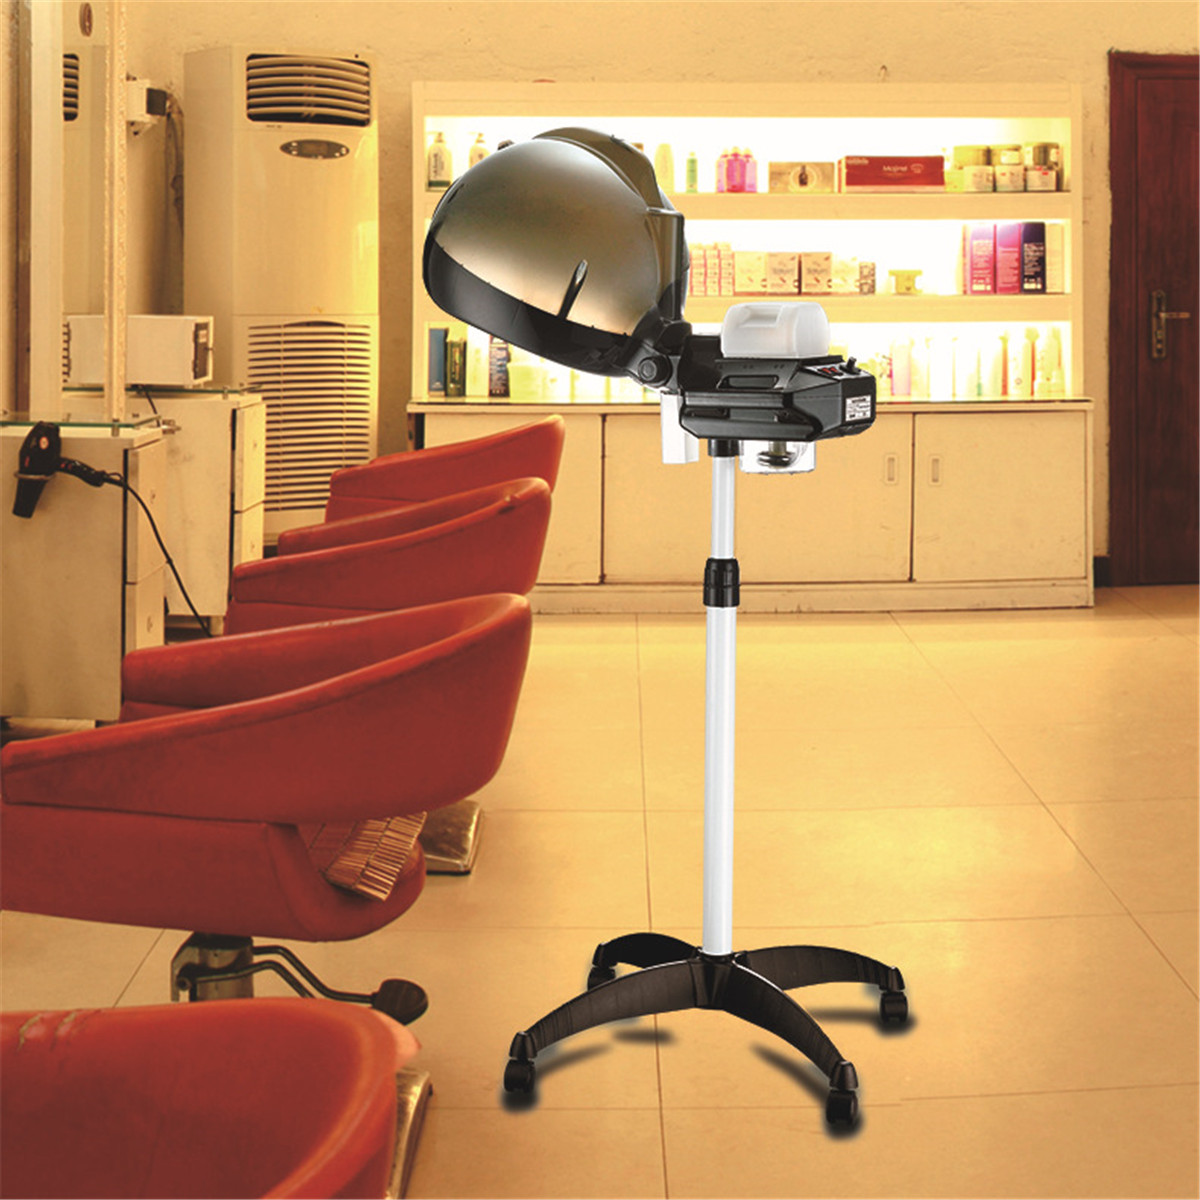 Professional Hair Steamer Rolling Stand Beauty Salon Color: Electric Hair Steamer Professional Salon Hair Hairdressing